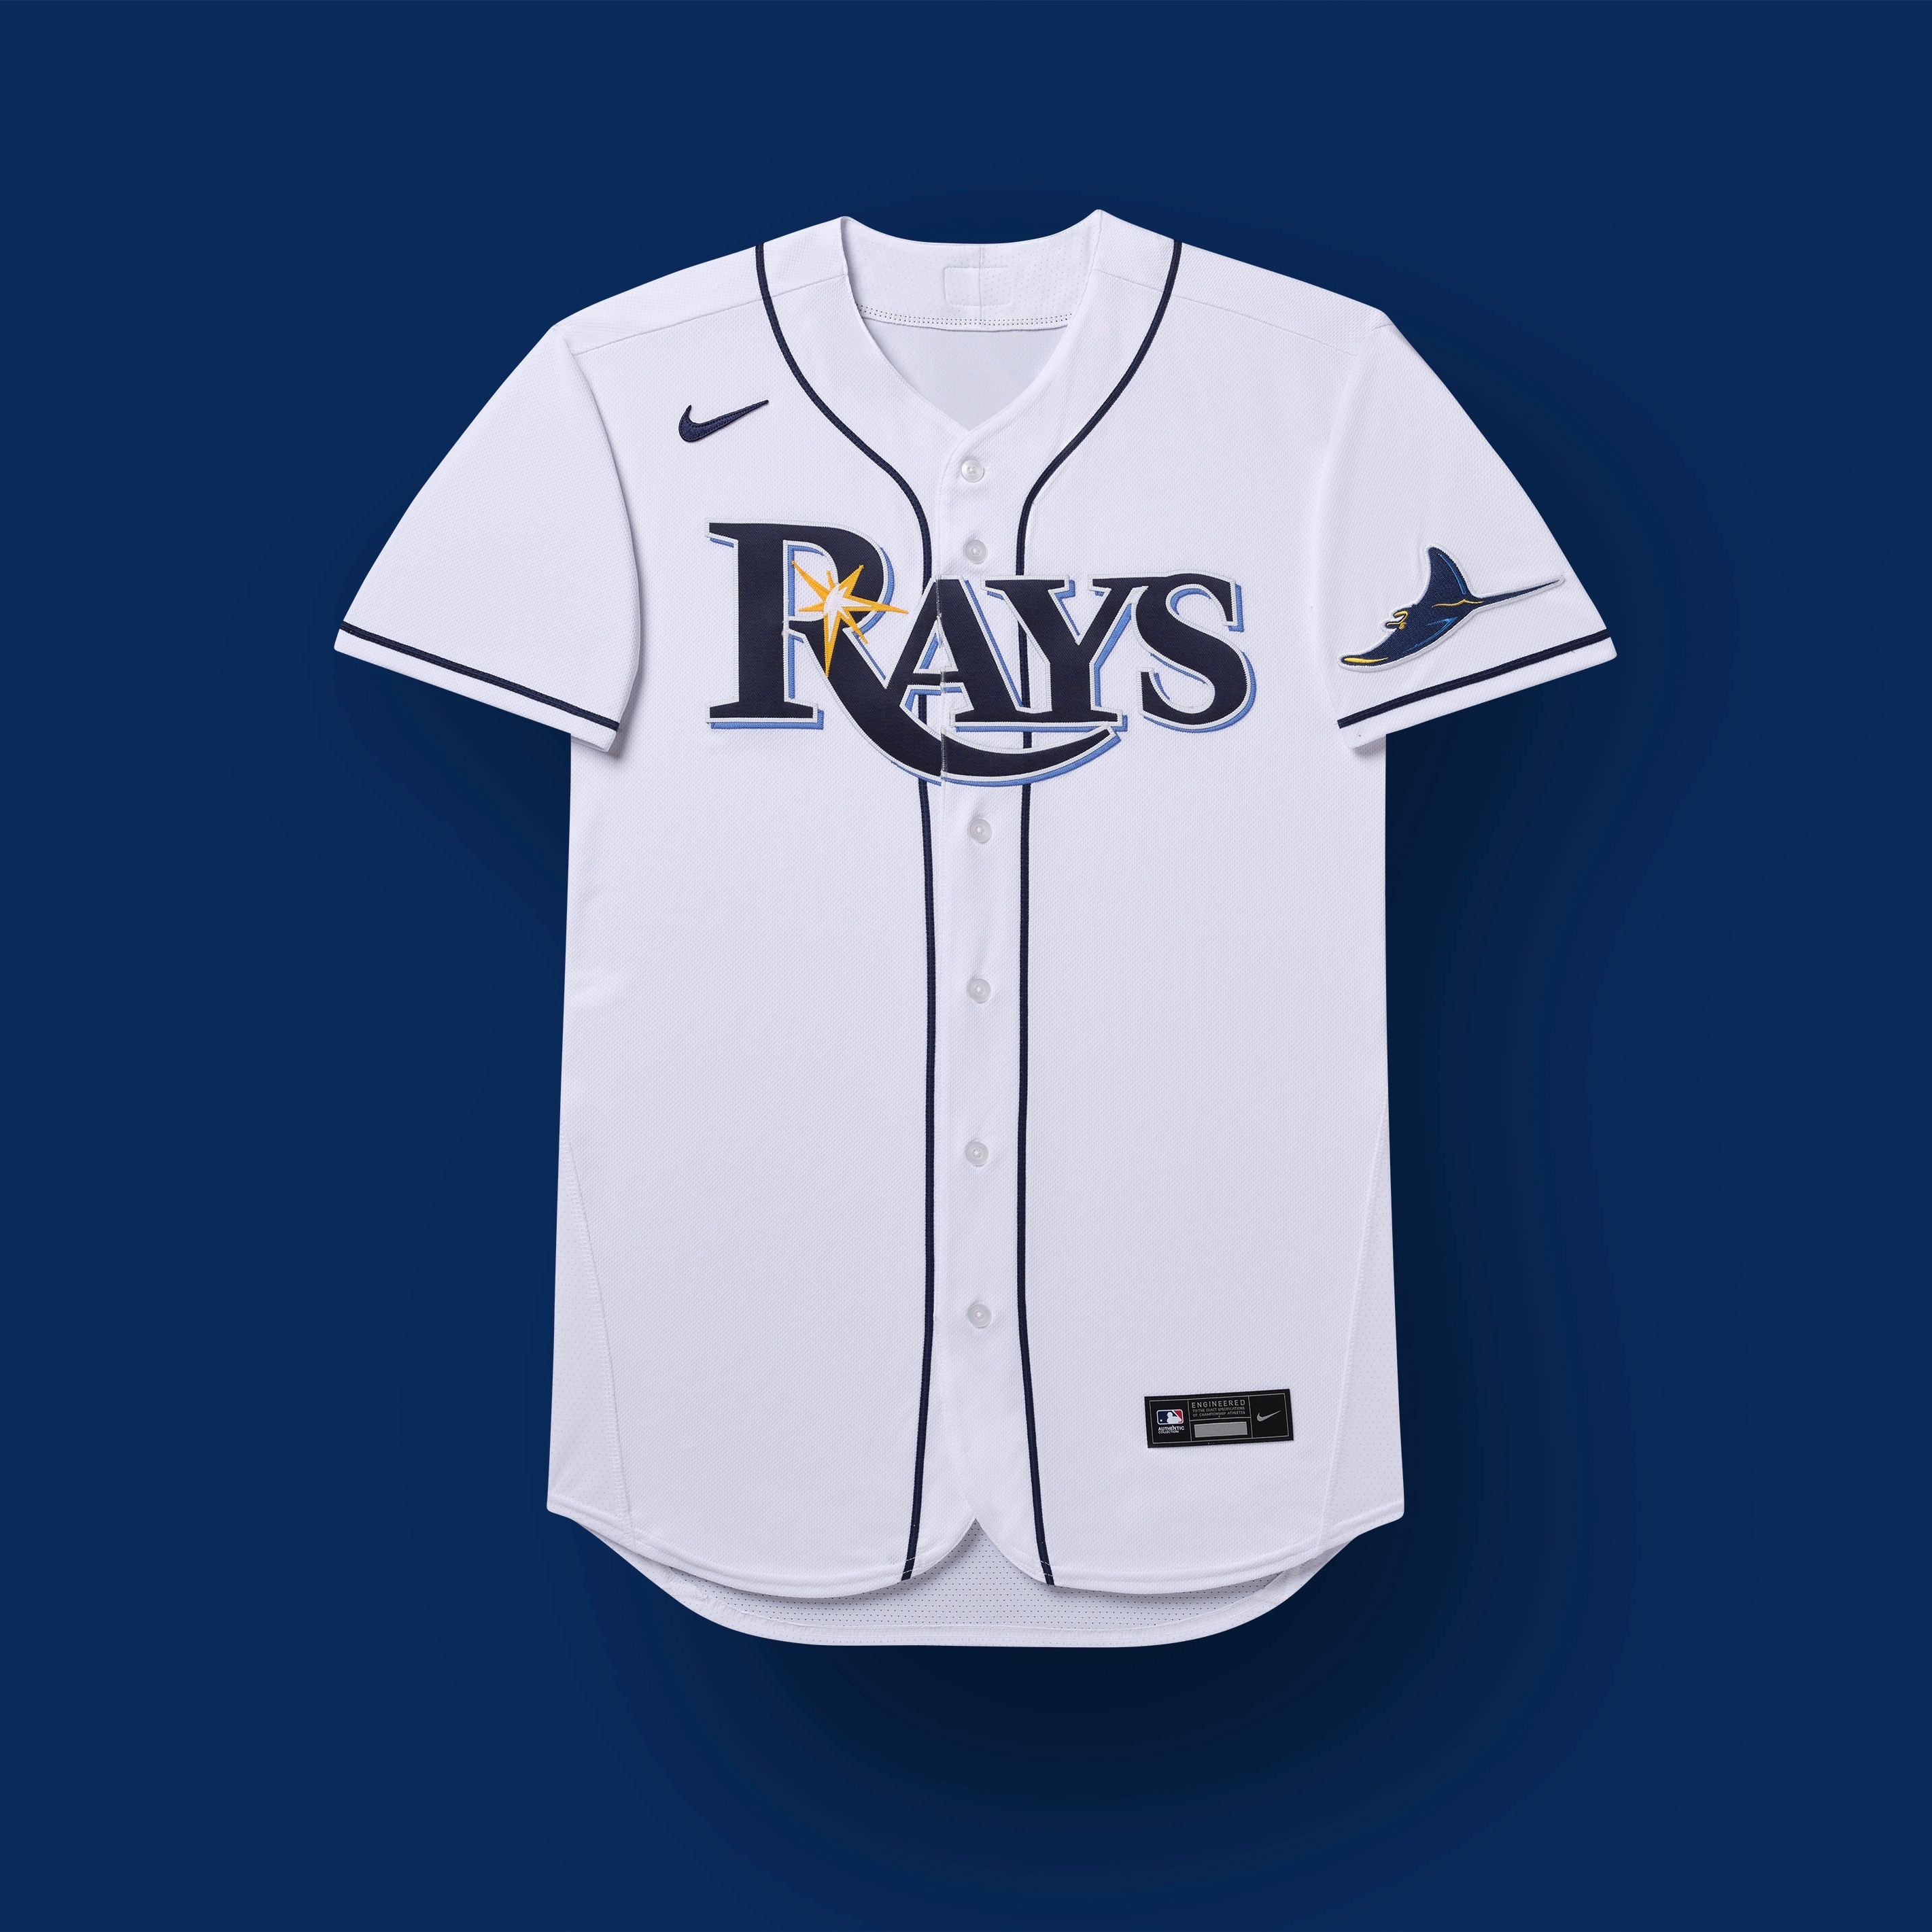 tampa bay rays 2020 uniforms